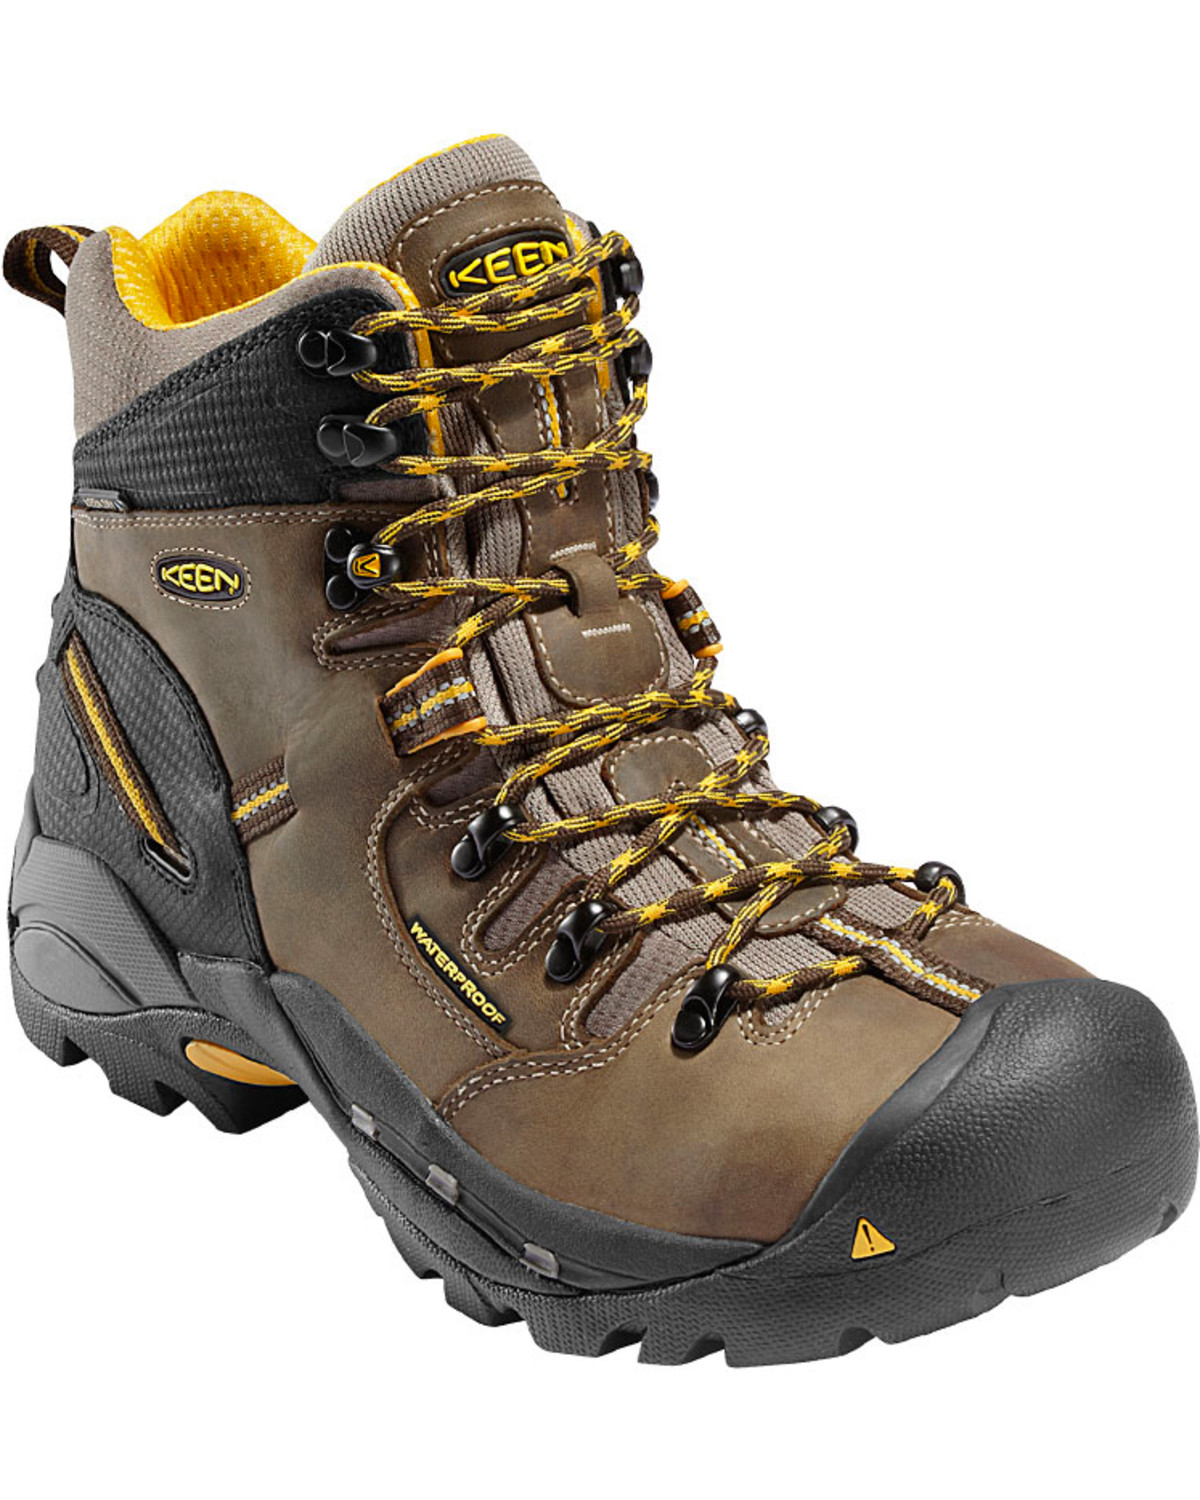 53913d7fa9d Keen Men's Electrical Hazard Protection Steel Toe Work Boot